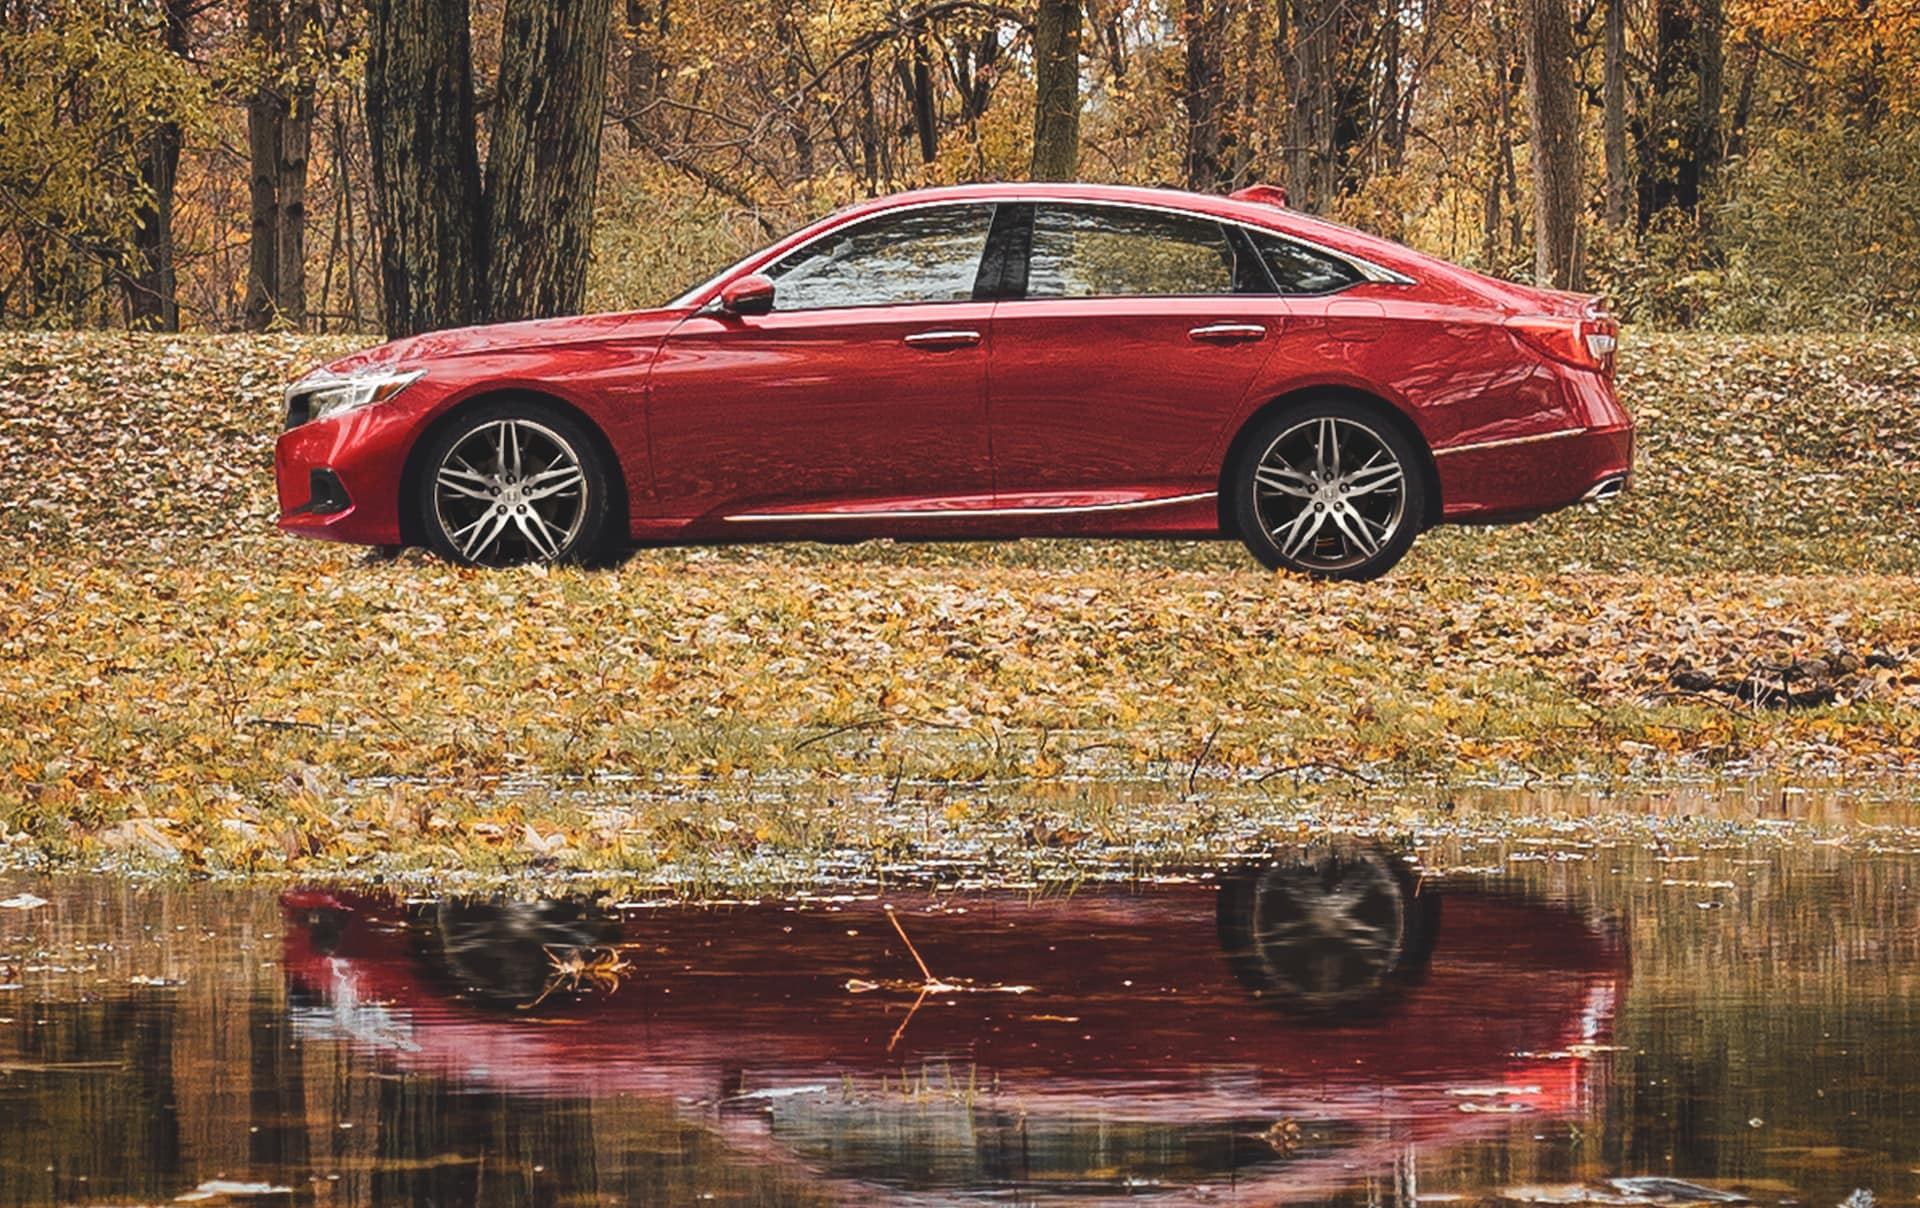 Driver-side profile view of the 2021 Honda Accord Touring 2.0T, shown in Radiant Red Metallic, stopped on a park drive next to a pond during autumn.